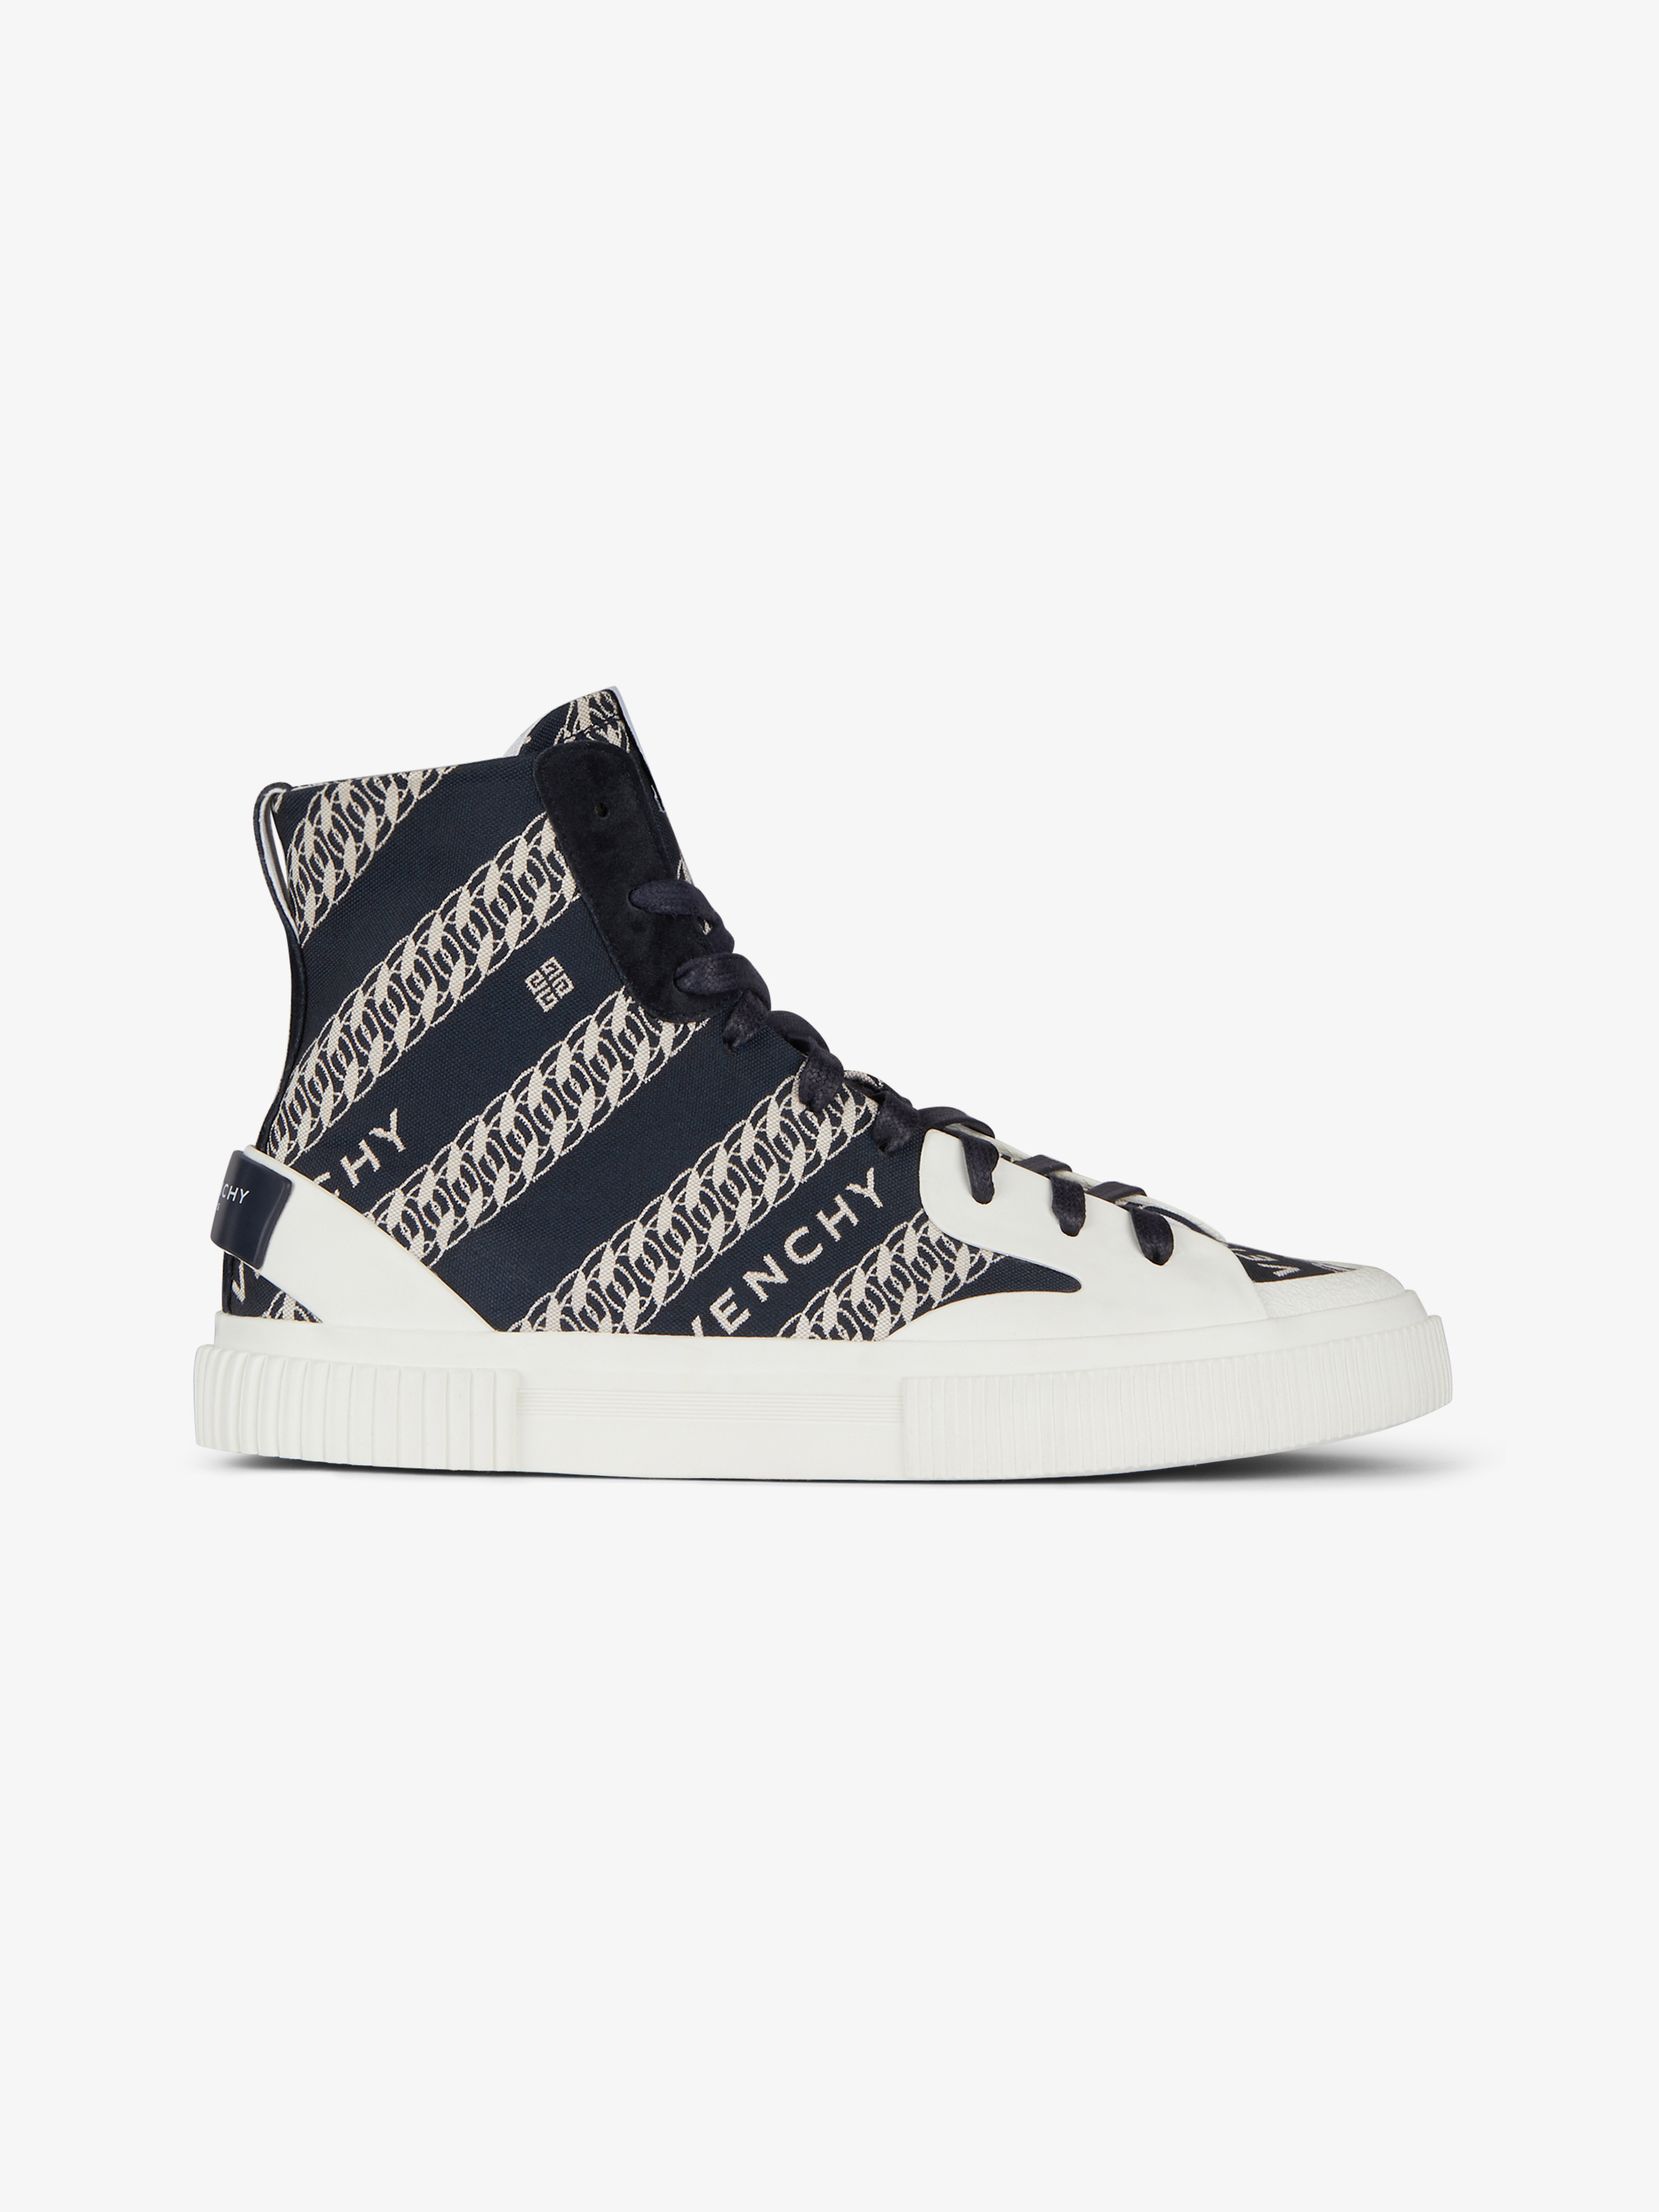 GIVENCHY chain Tennis Light high top sneakers in canvas